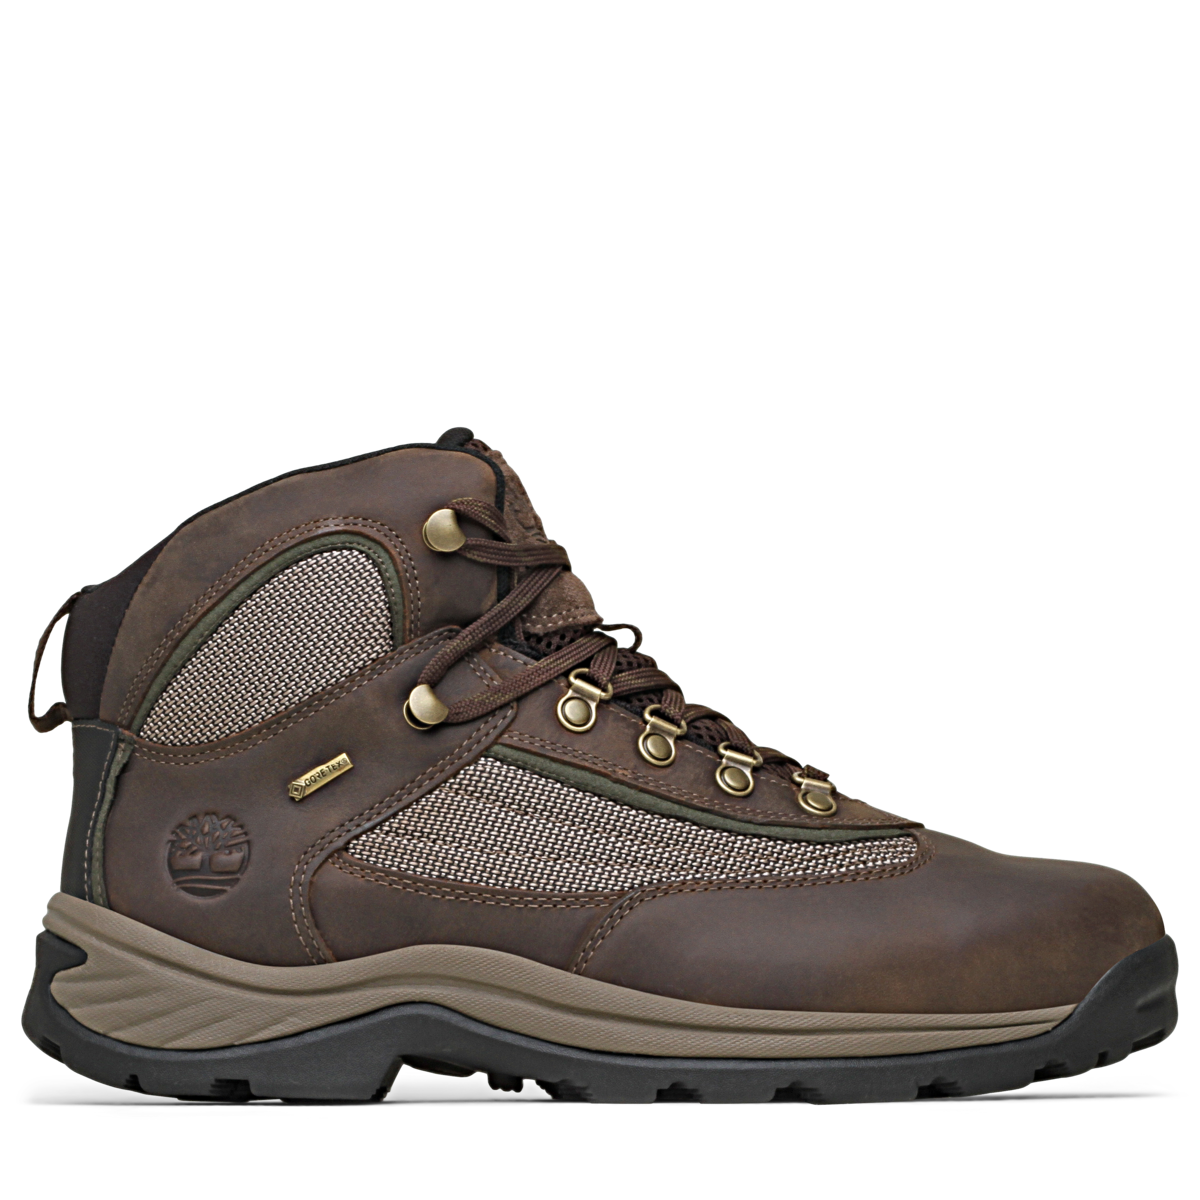 Timberland - Plymouth Trail Mid GTX - Brun - Herre